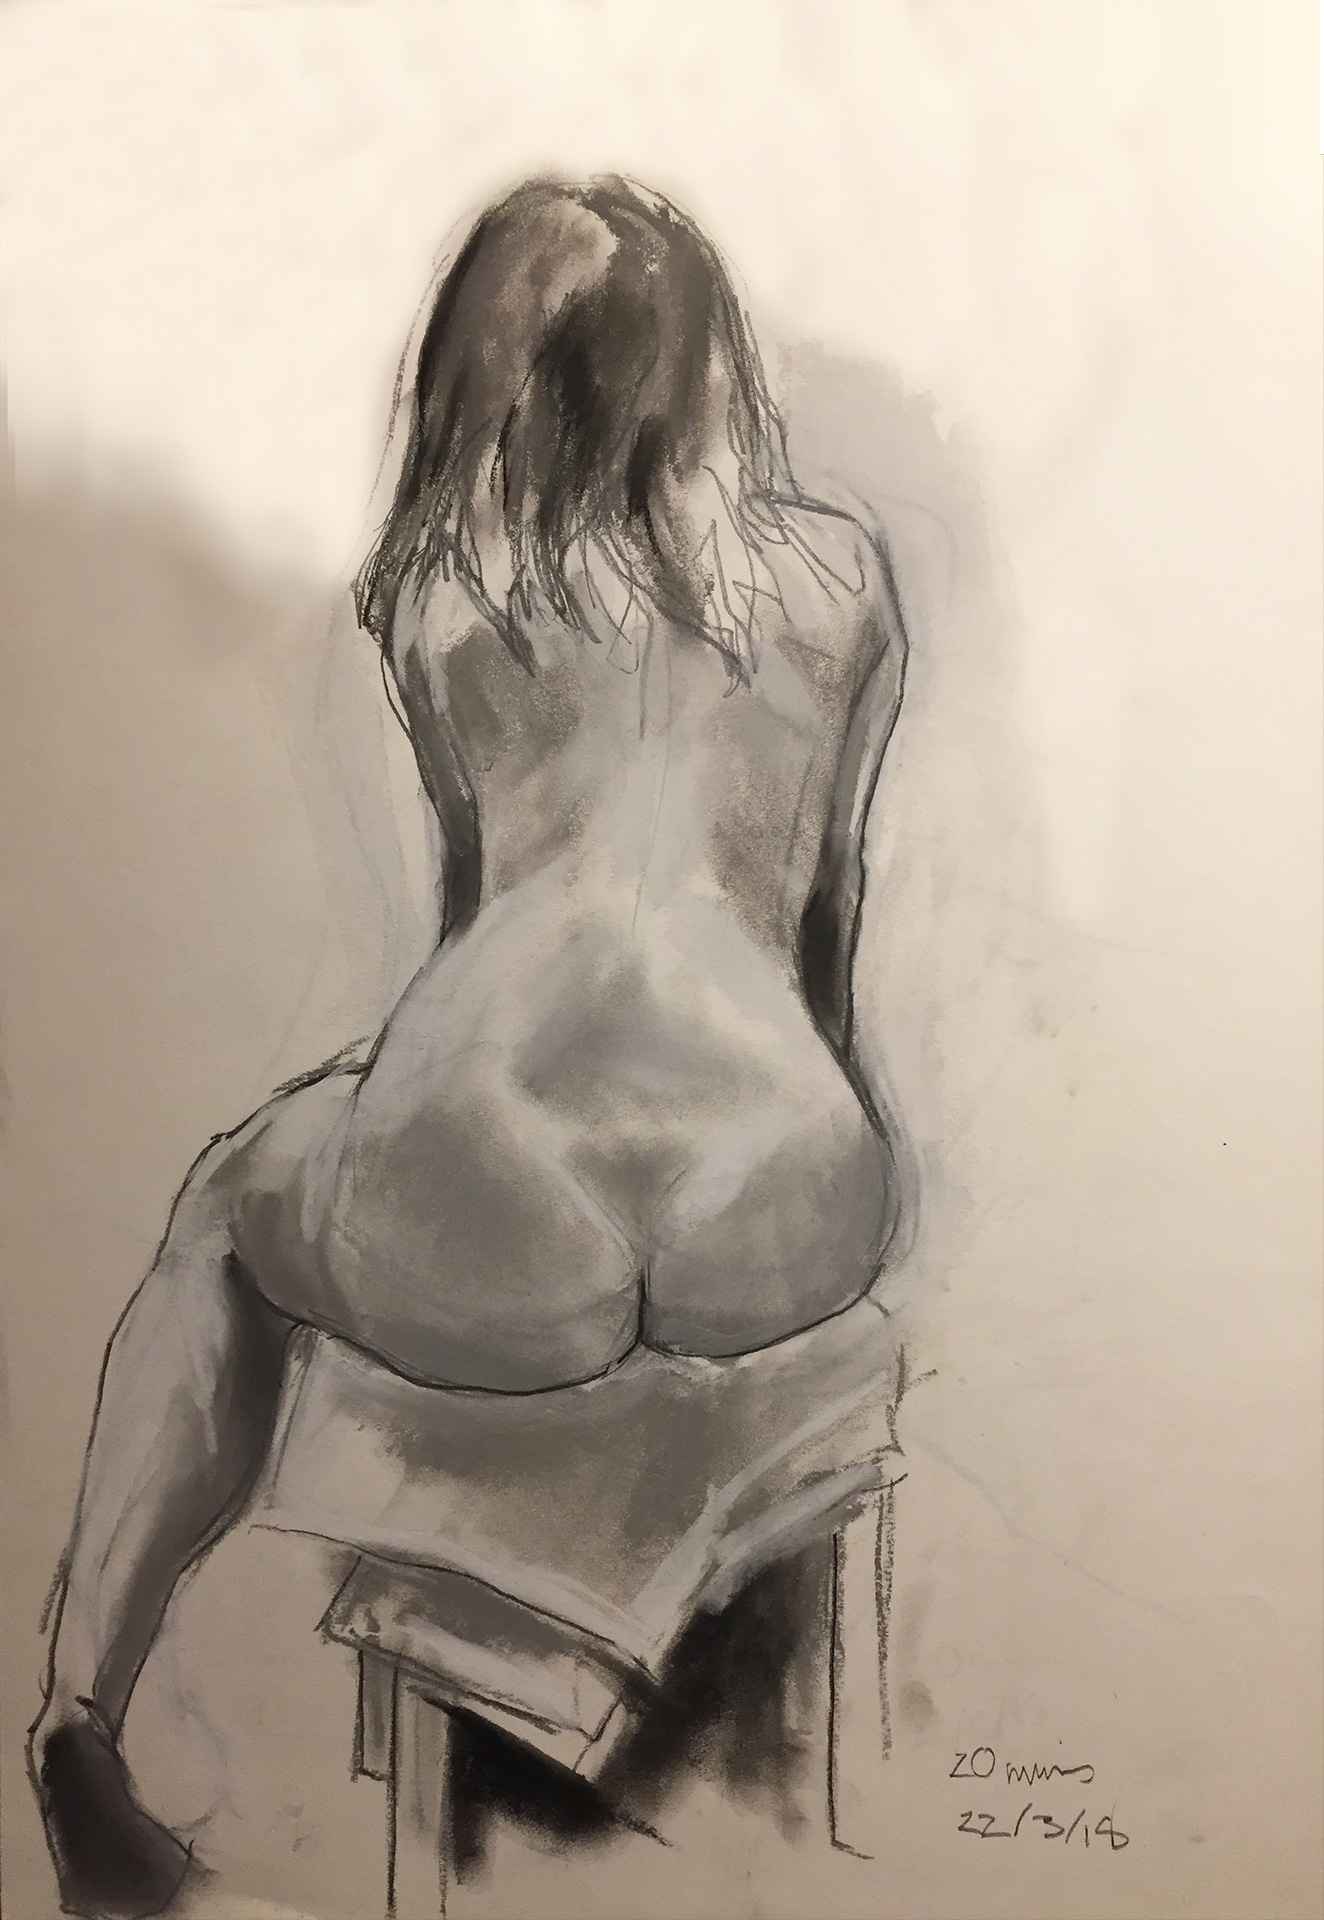 Life Drawing Sketch 1 Session 22/3/18